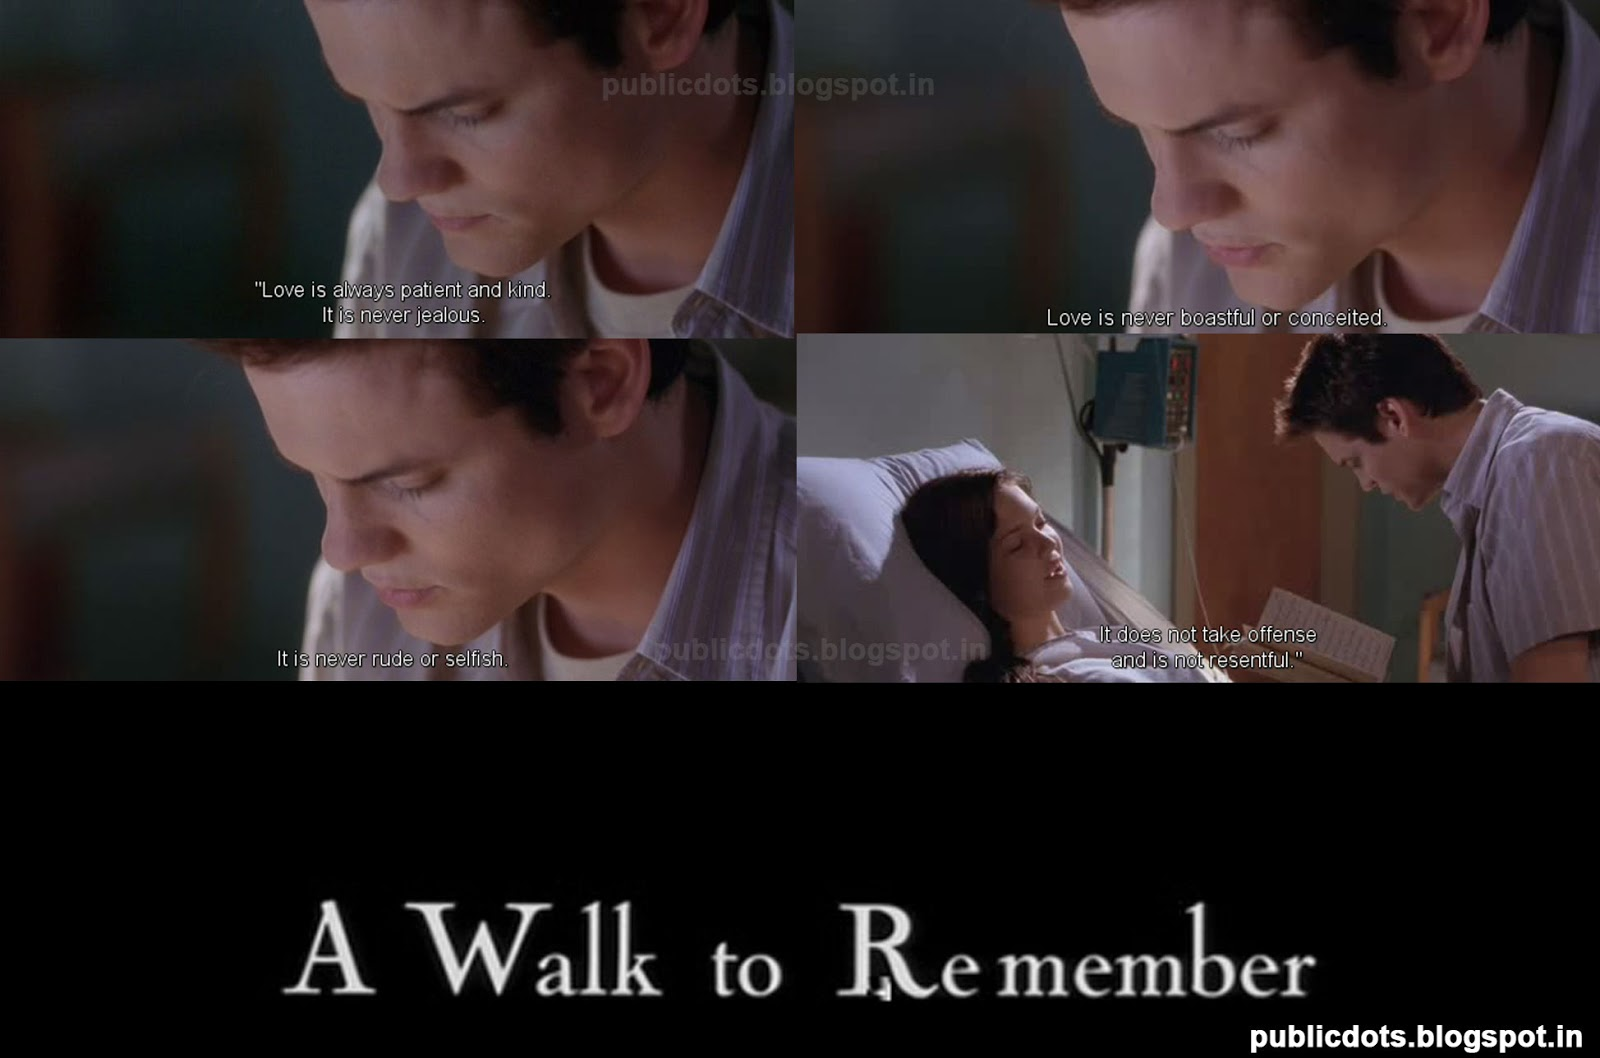 a walk to remember quotes love is always patient and kind - photo #3